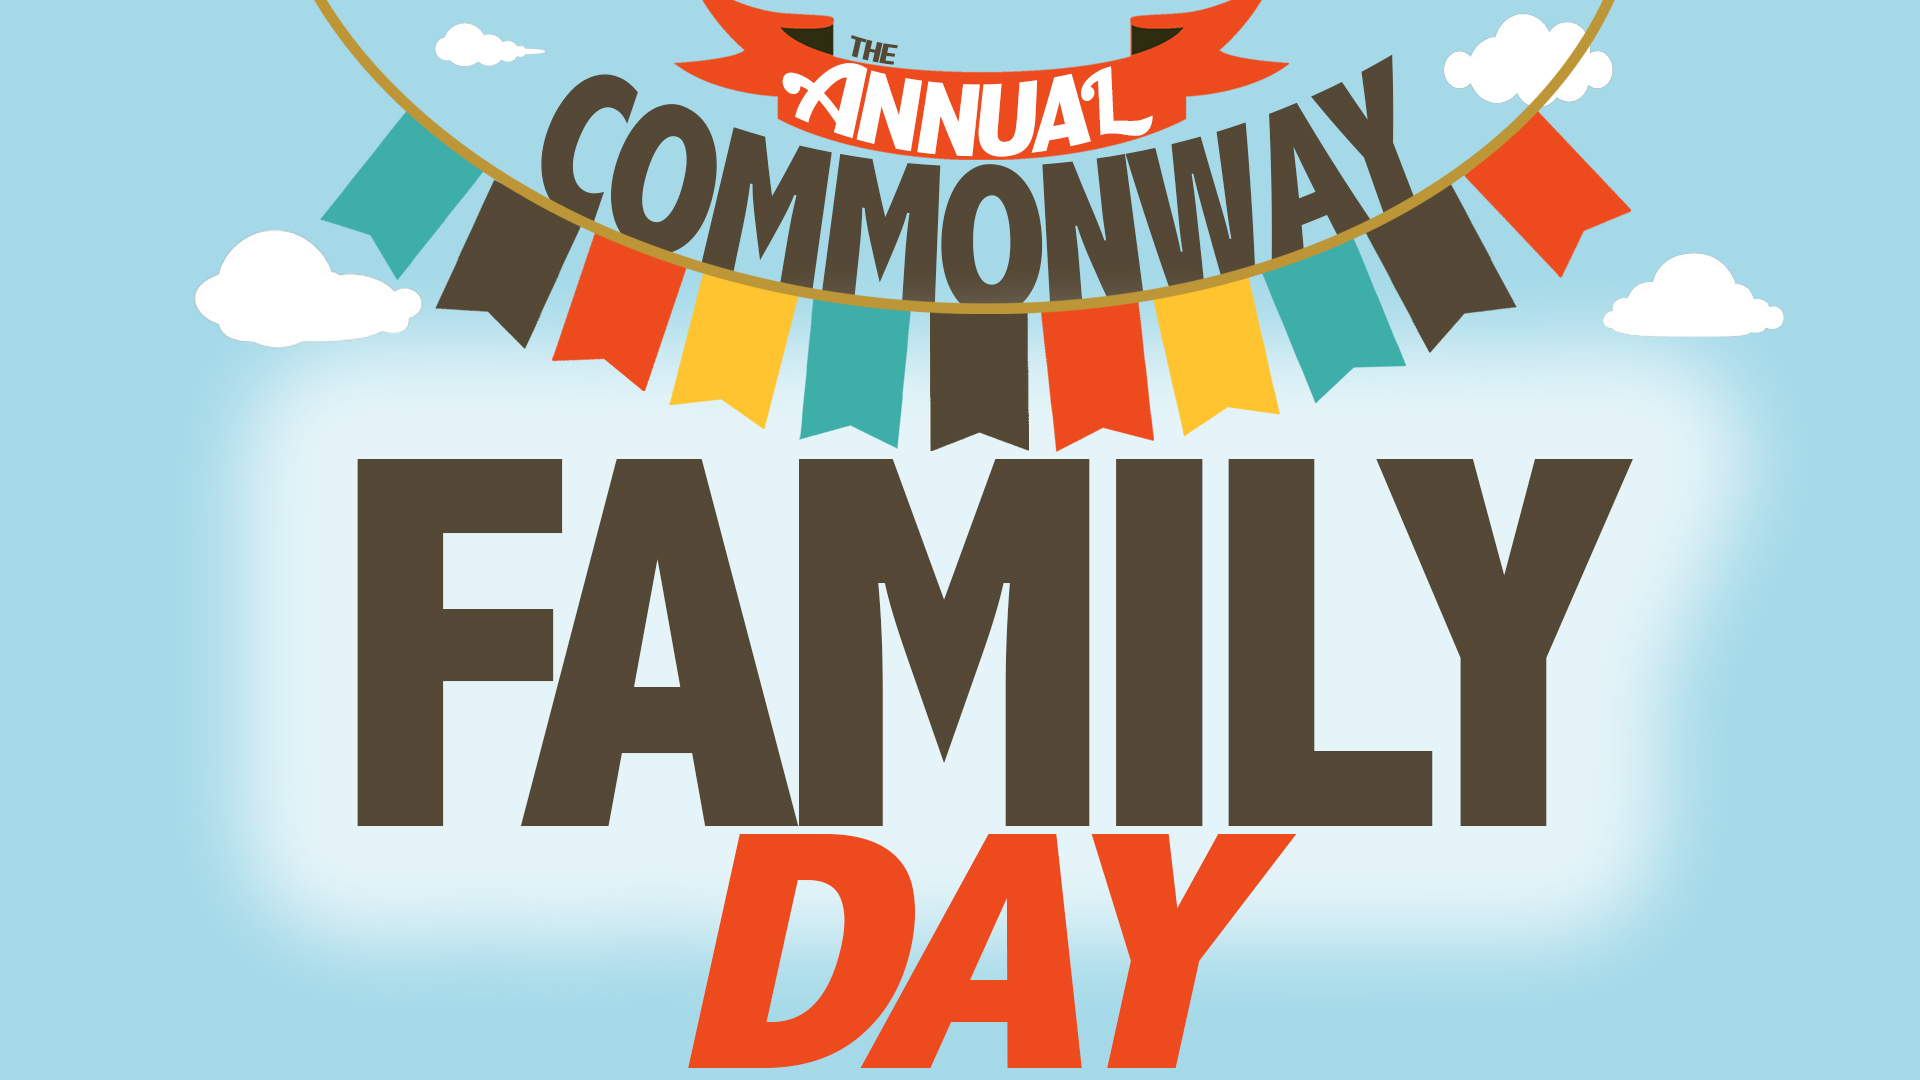 Family Day 2016 – Commonway Church